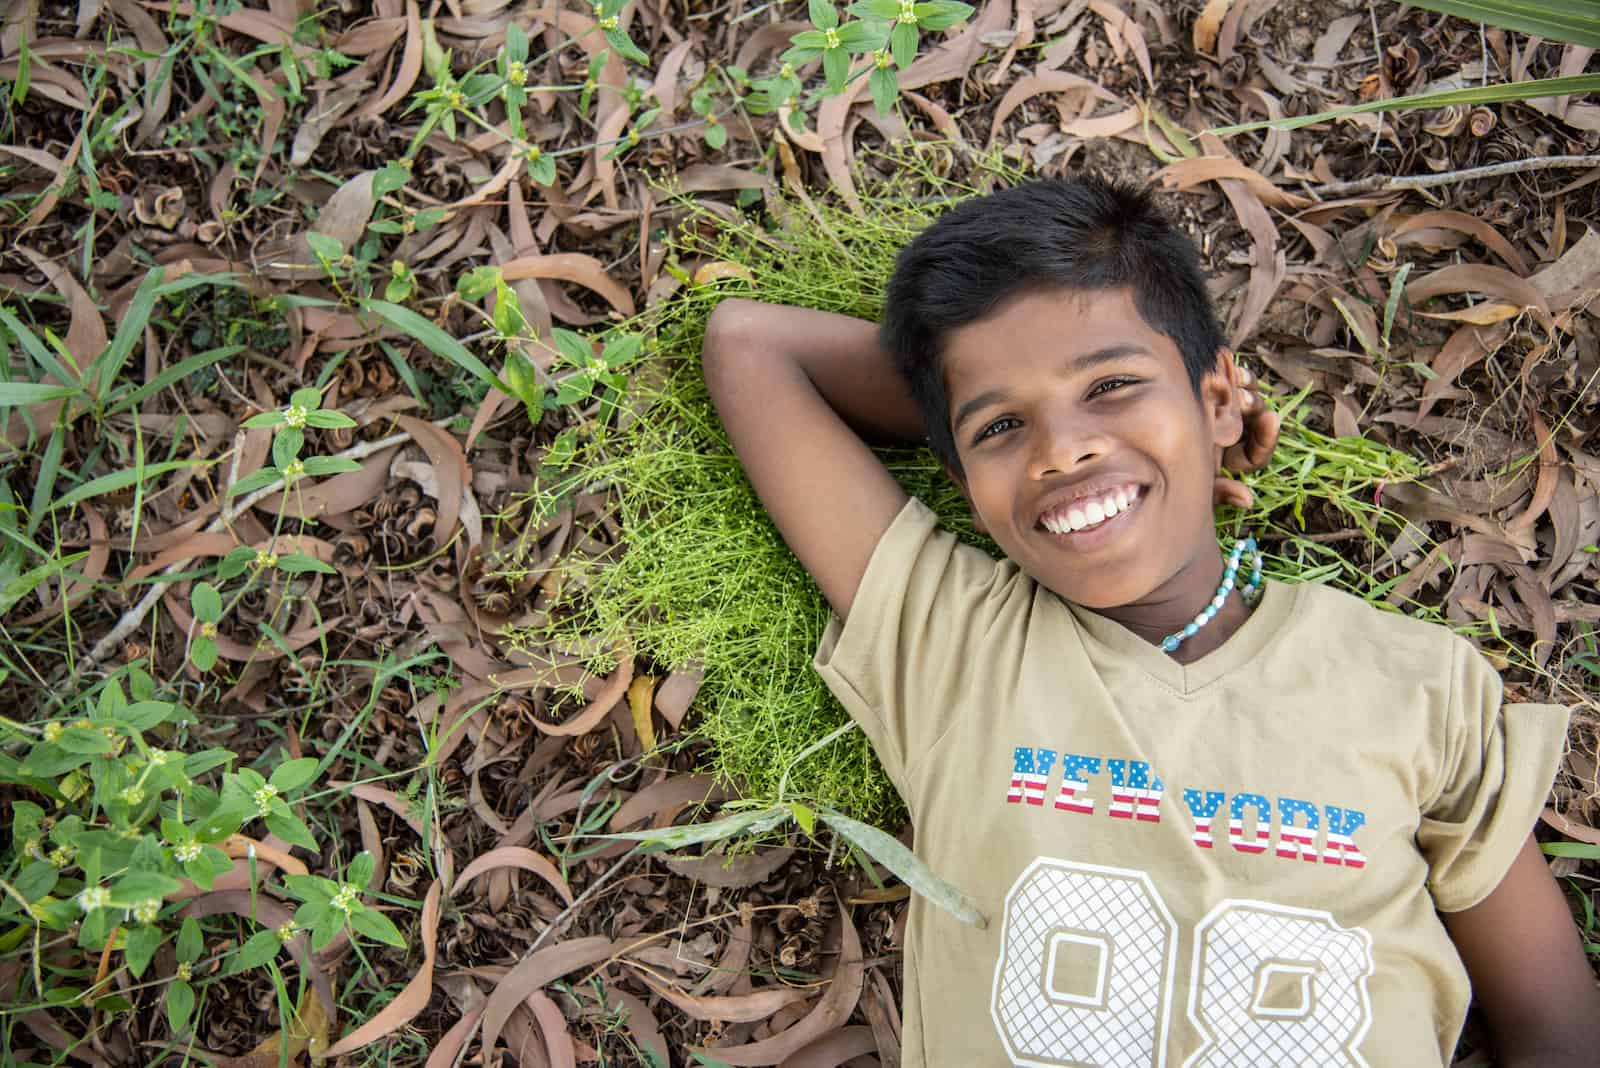 A boy in a tan shirt lays in the grass on the ground, smiling.